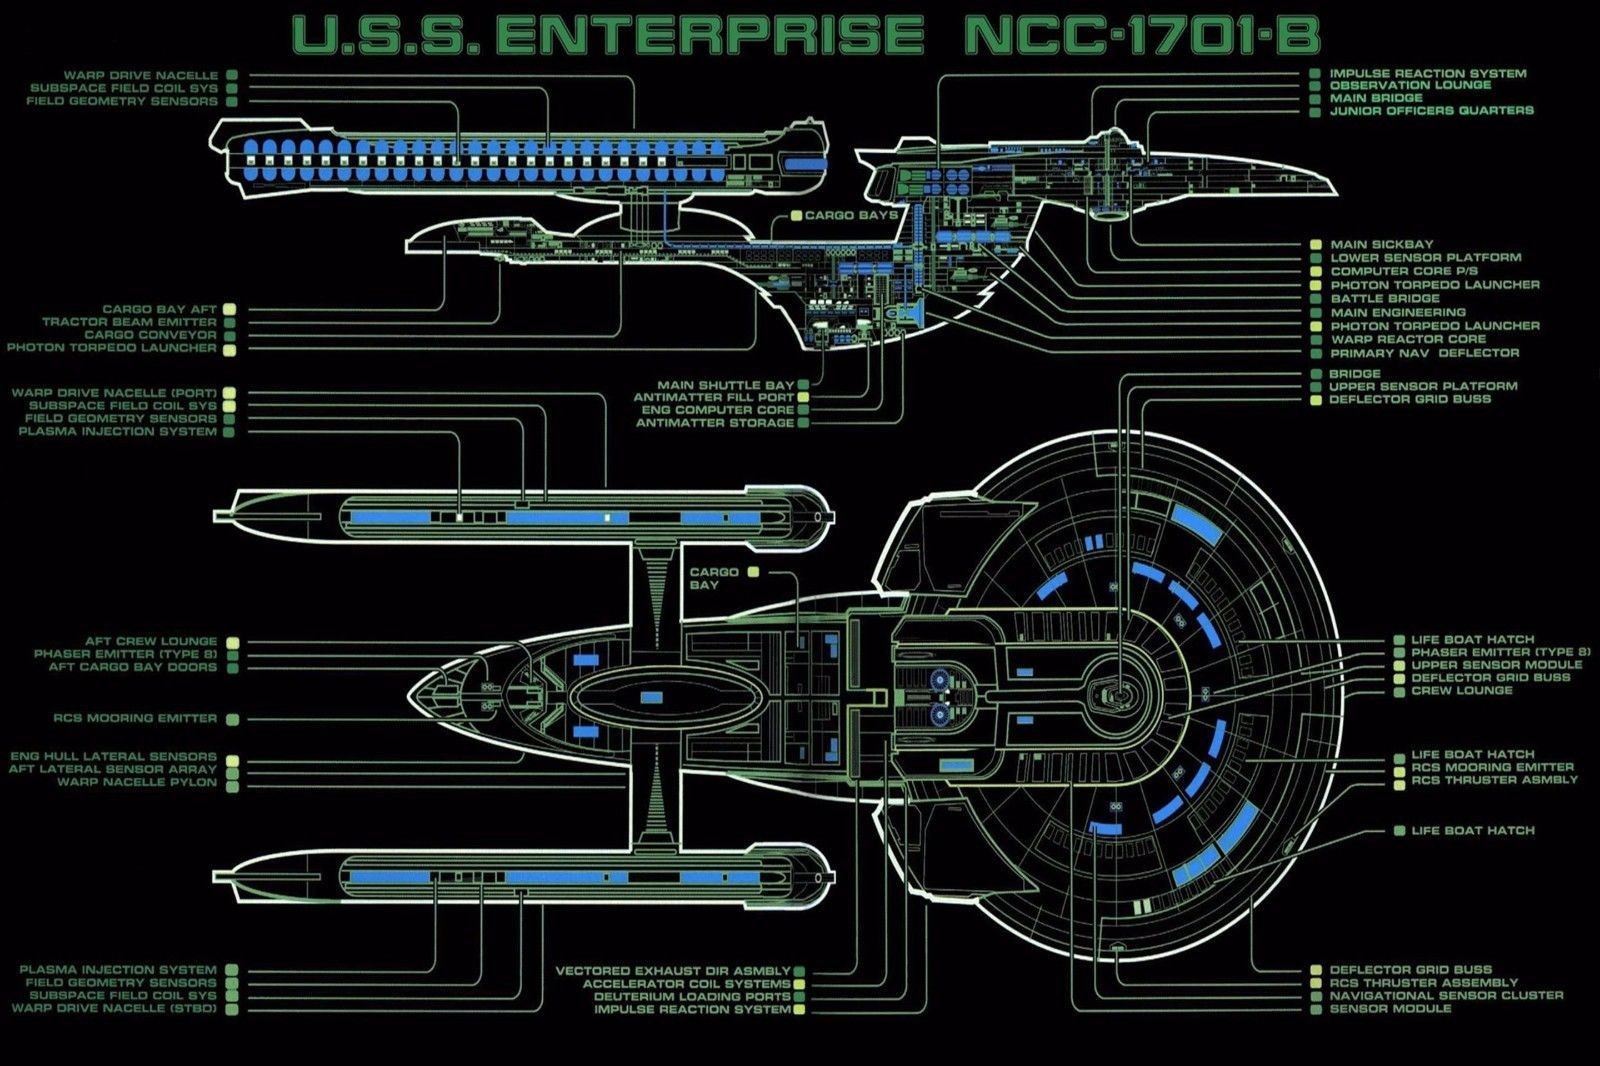 $13 45 - star trek ncc-1701 layout - wall poster- 24 in x 15 in - fast  shipping #ebay #collectibles